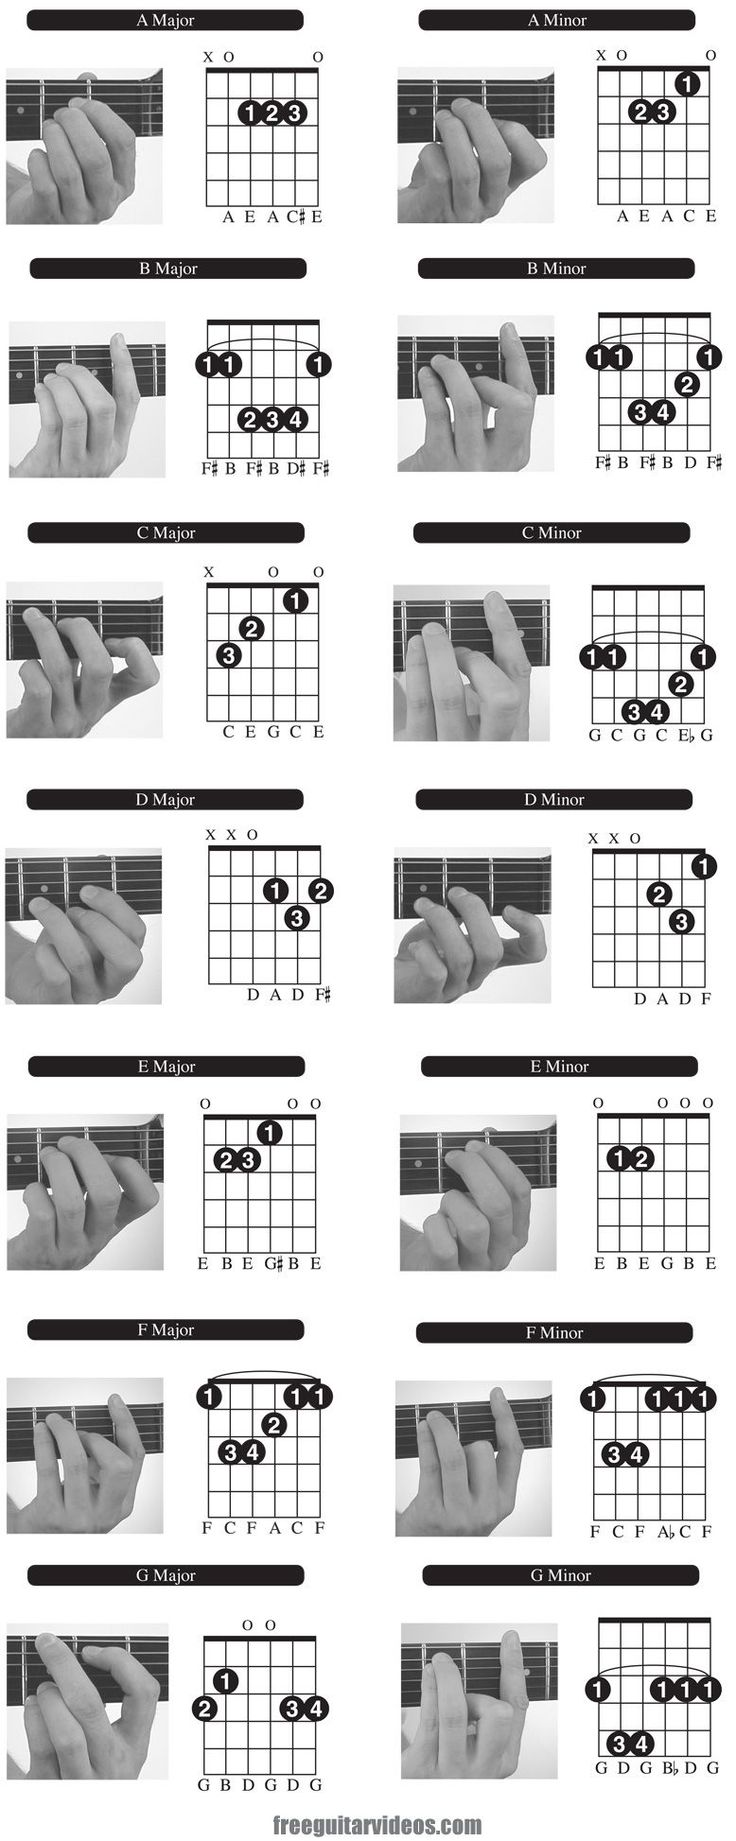 Guitar site for beginners and advanced - http://guitar-cxq26g74.popularreviewsonline.com